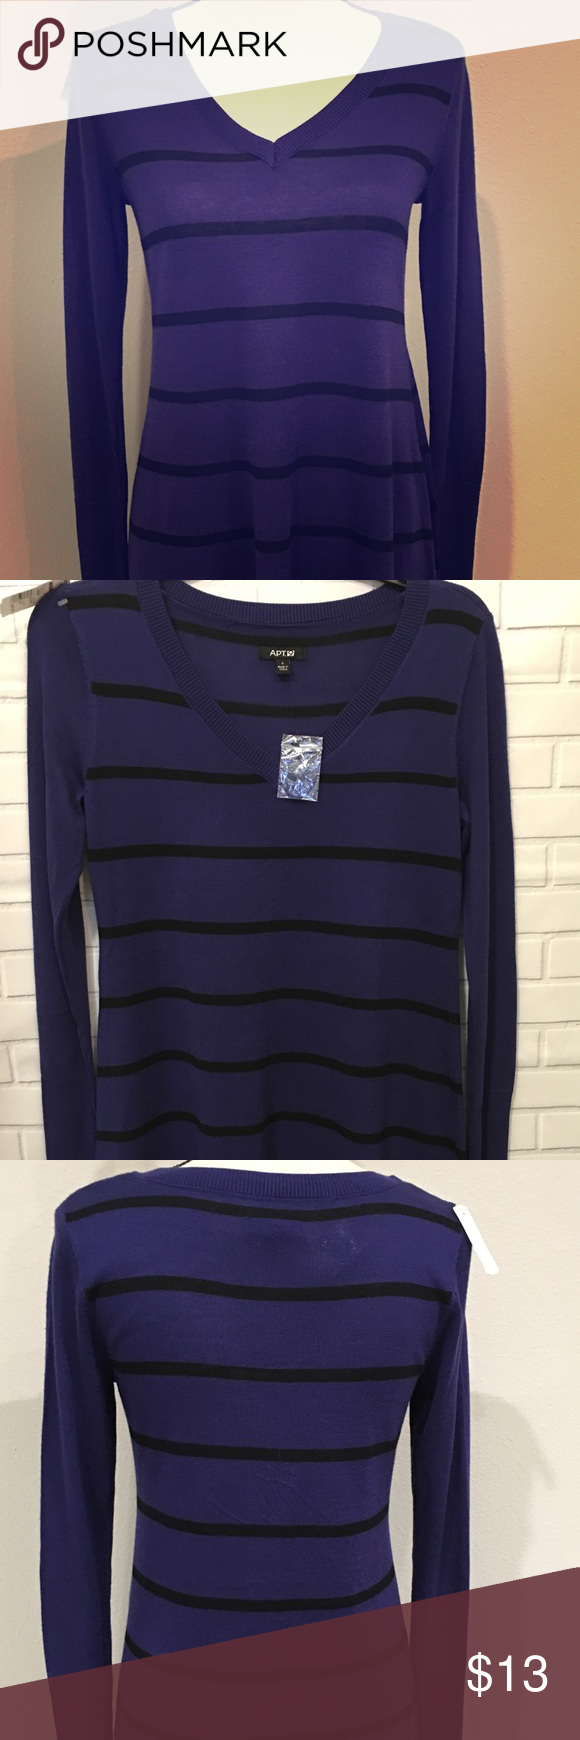 APT 9 Knit Top lightweight tunic sweater striped NWT | Tunic ...